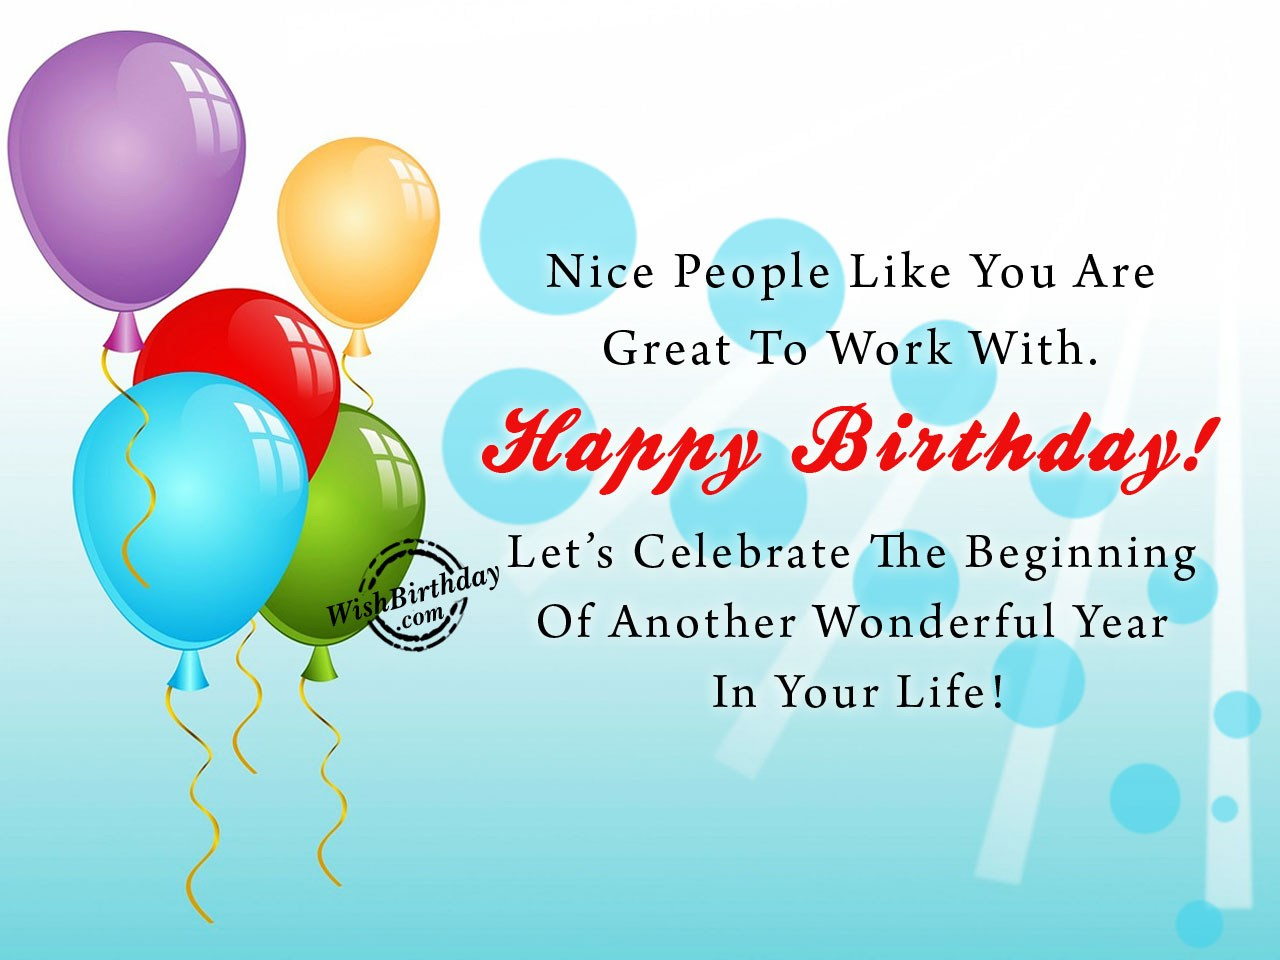 happy birthday wish to senior colleague ; Great-To-Work-With-You